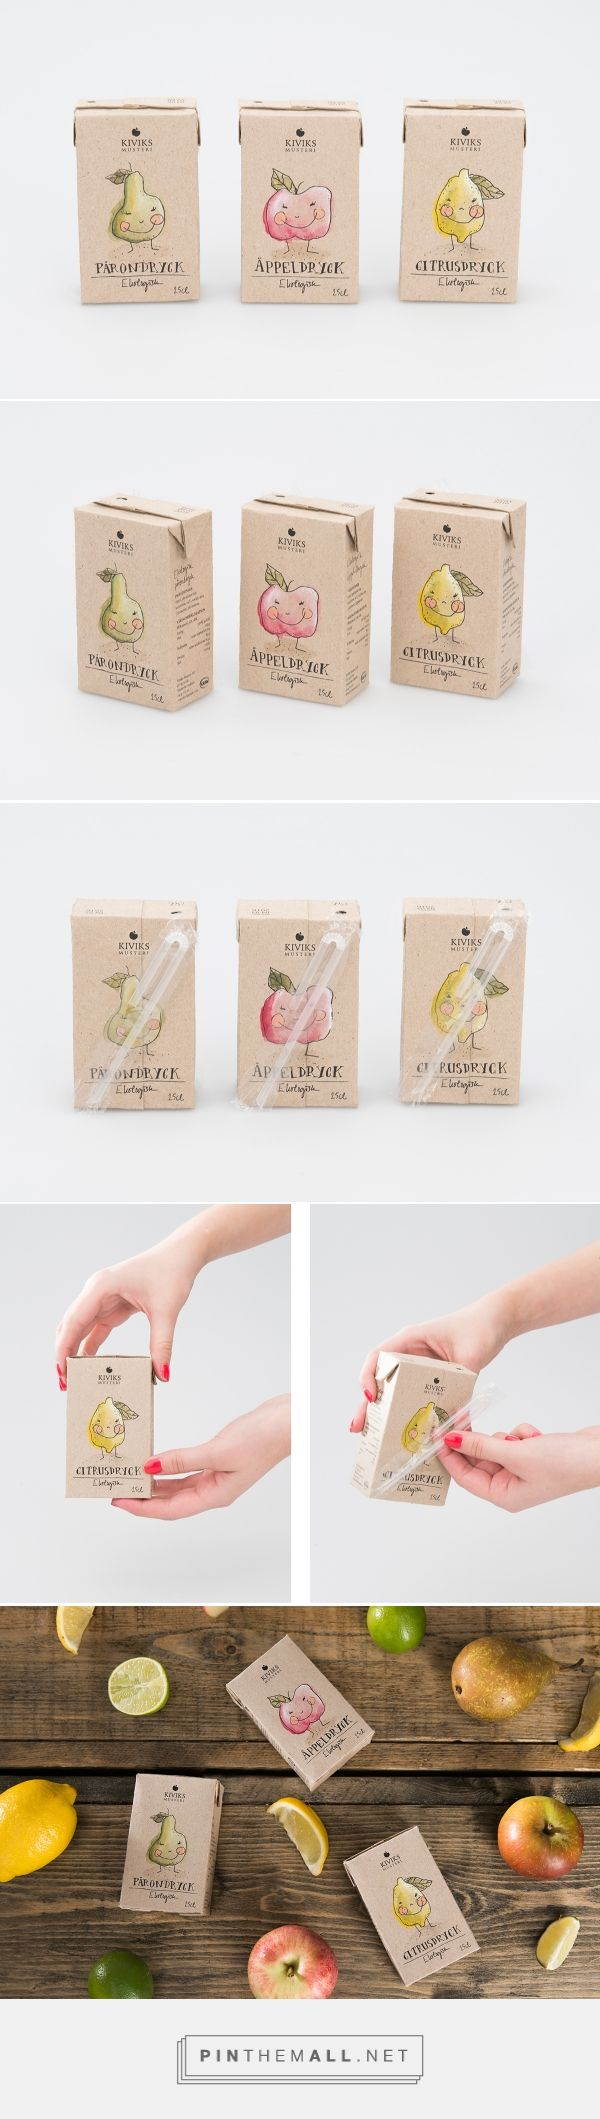 Kiviks Musteri fruit drinks by Josefine Johansson. Source: Behance. Pin curated by #SFields99 #packaging #design